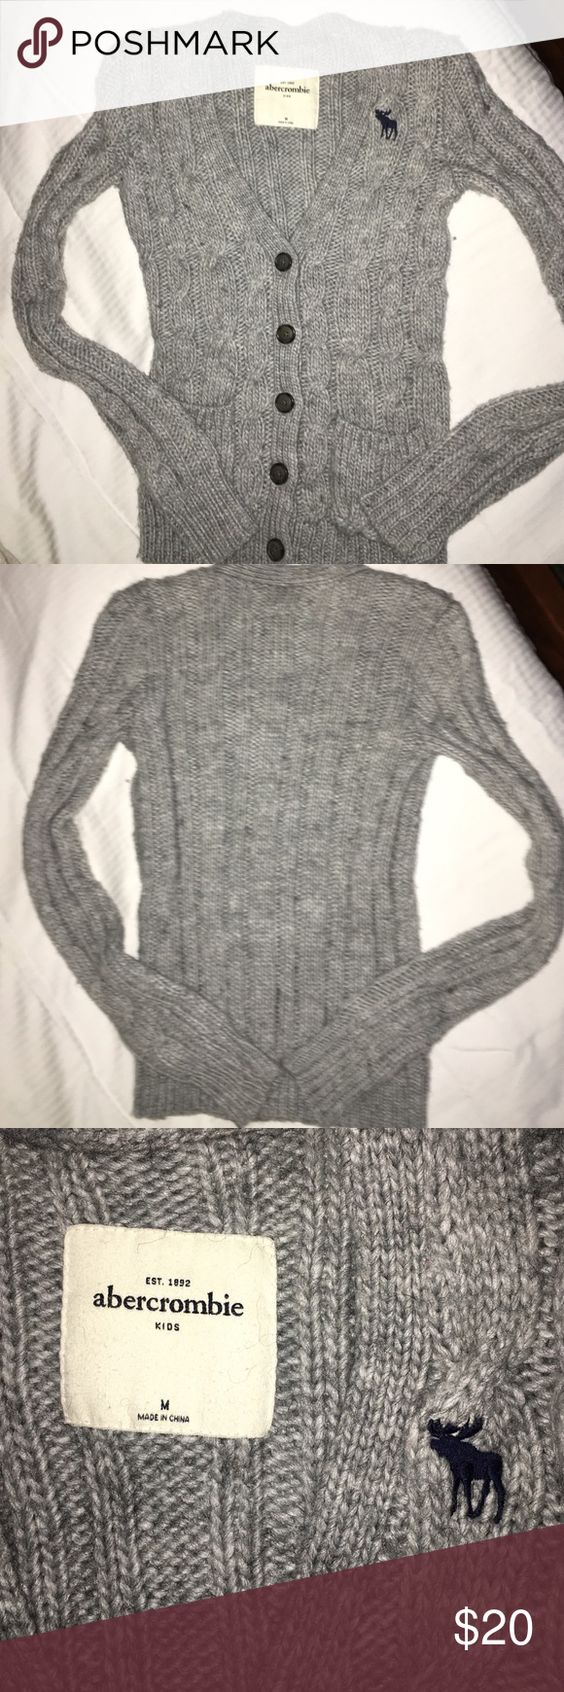 Abercrombie Girls Gray Cardigan sweater Abercrombie Girls Gray Cardigan sweater. Excellent condition. abercrombie kids Shirts & Tops Sweaters